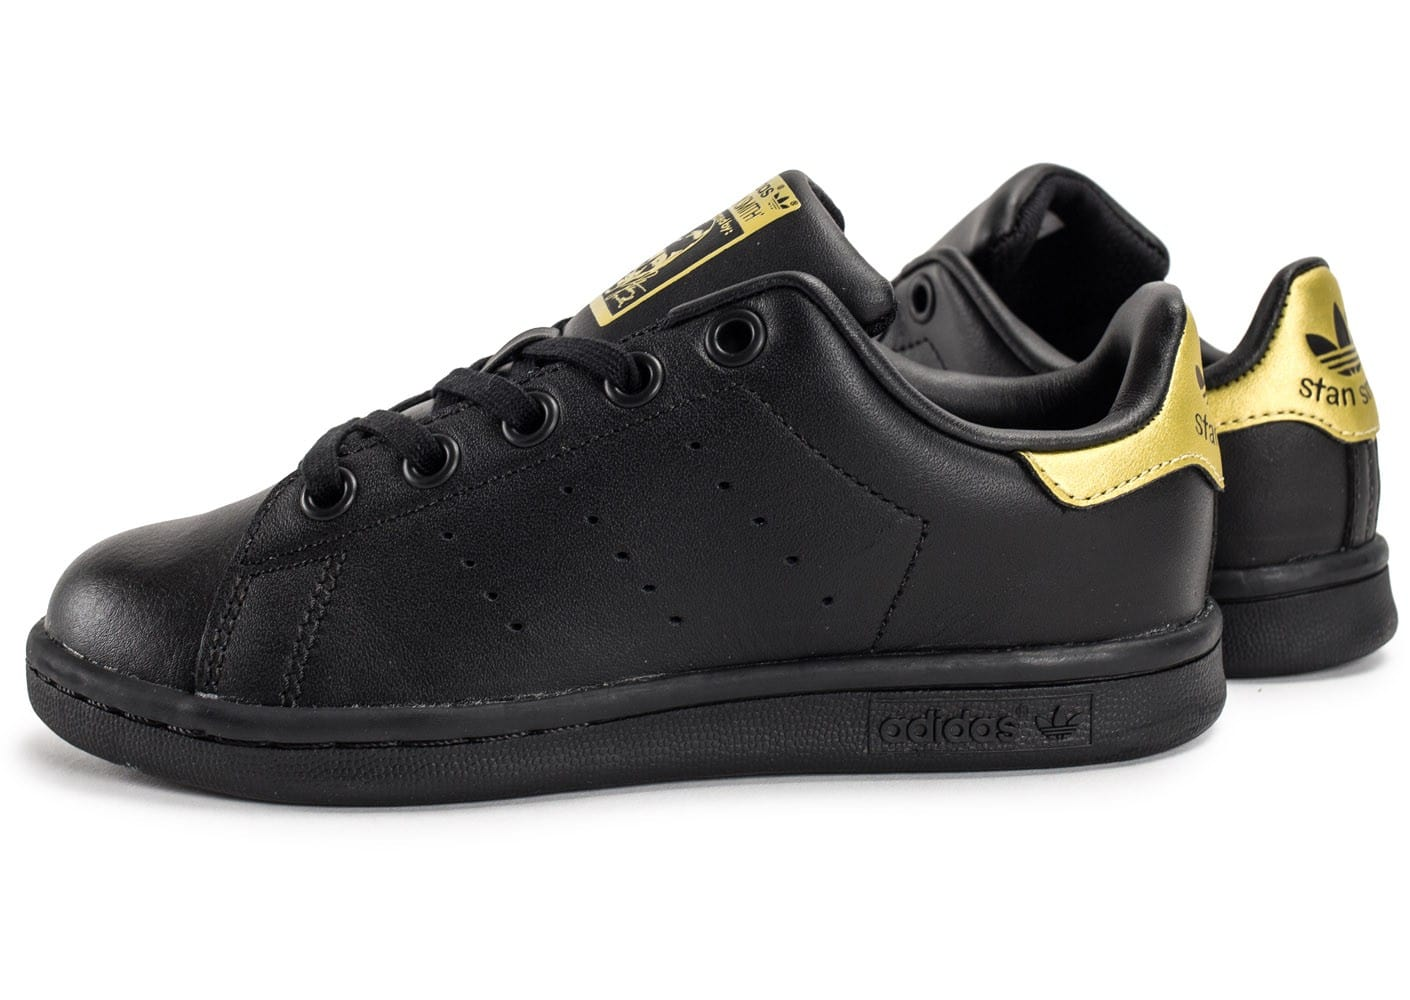 adidas stan smith enfant noire et or chaussures adidas chausport. Black Bedroom Furniture Sets. Home Design Ideas